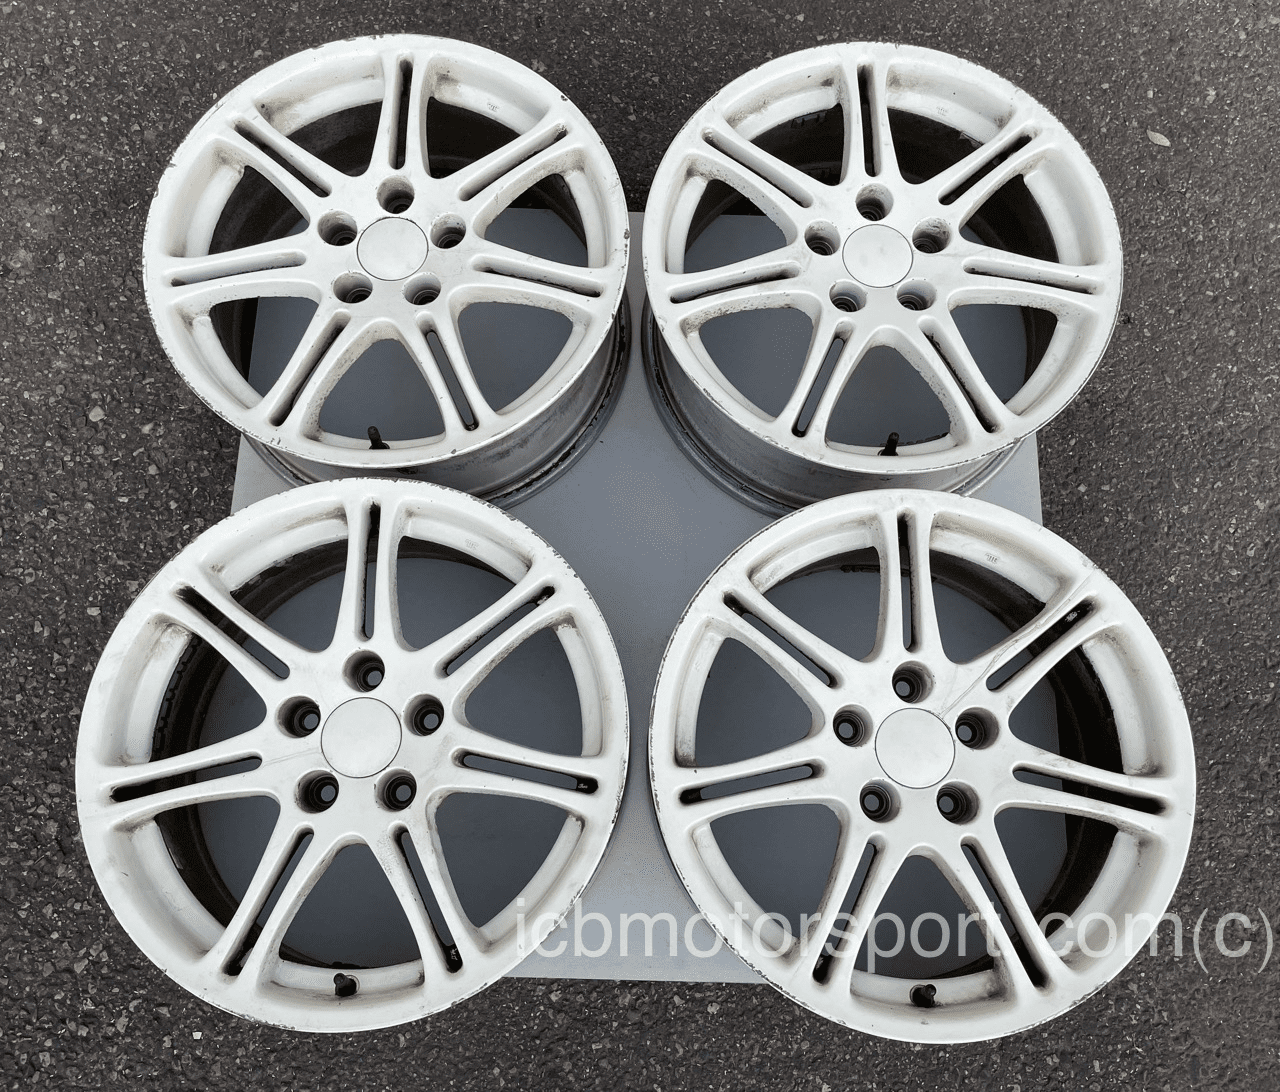 Used Civic EP3 Type R Champ. White Wheels 17X7 +60 Offset